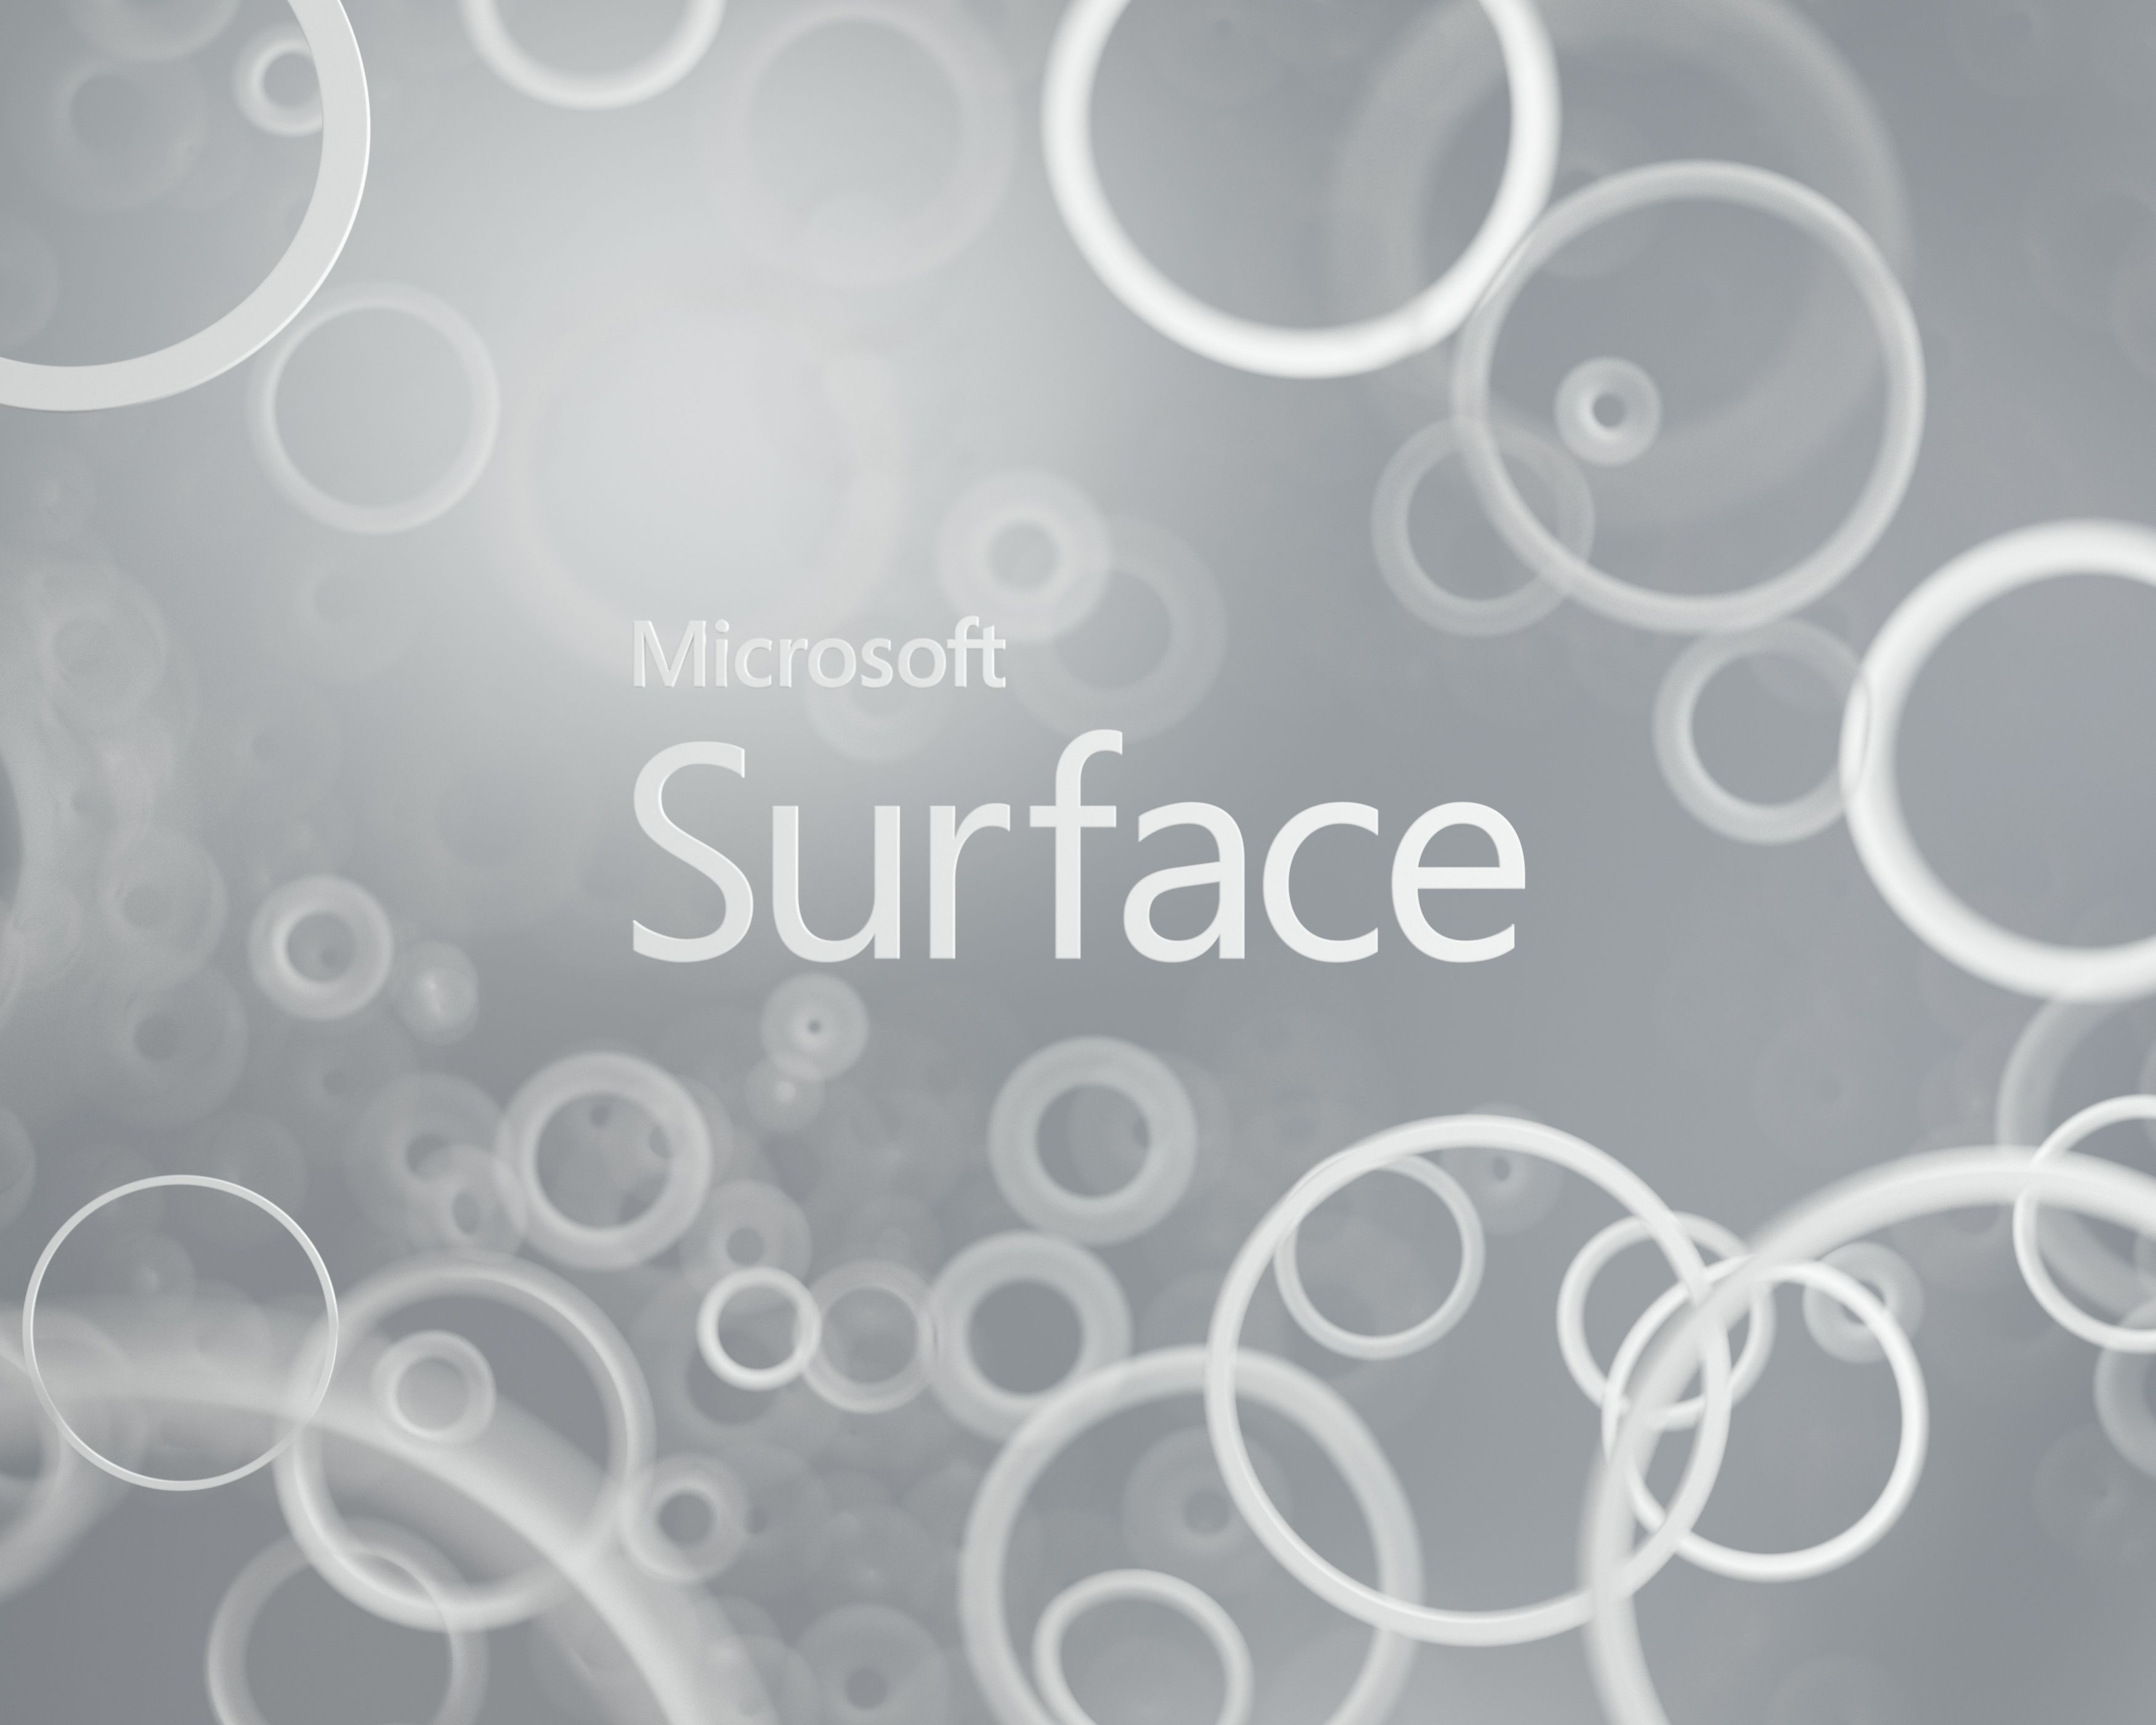 Microsoft Surface Wallpapers Group 70